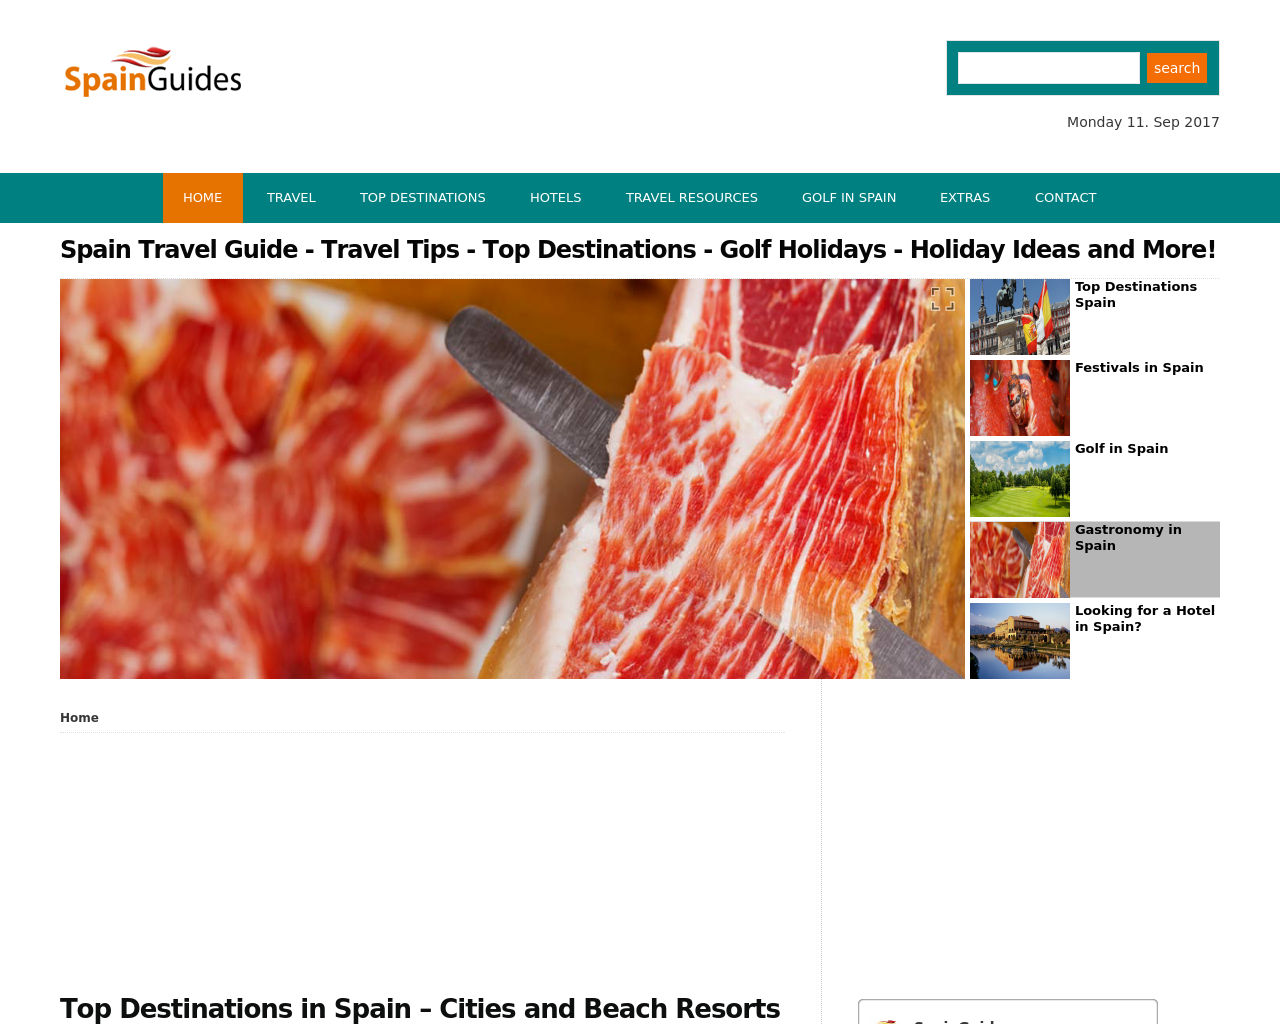 Spain-Guides-Advertising-Reviews-Pricing